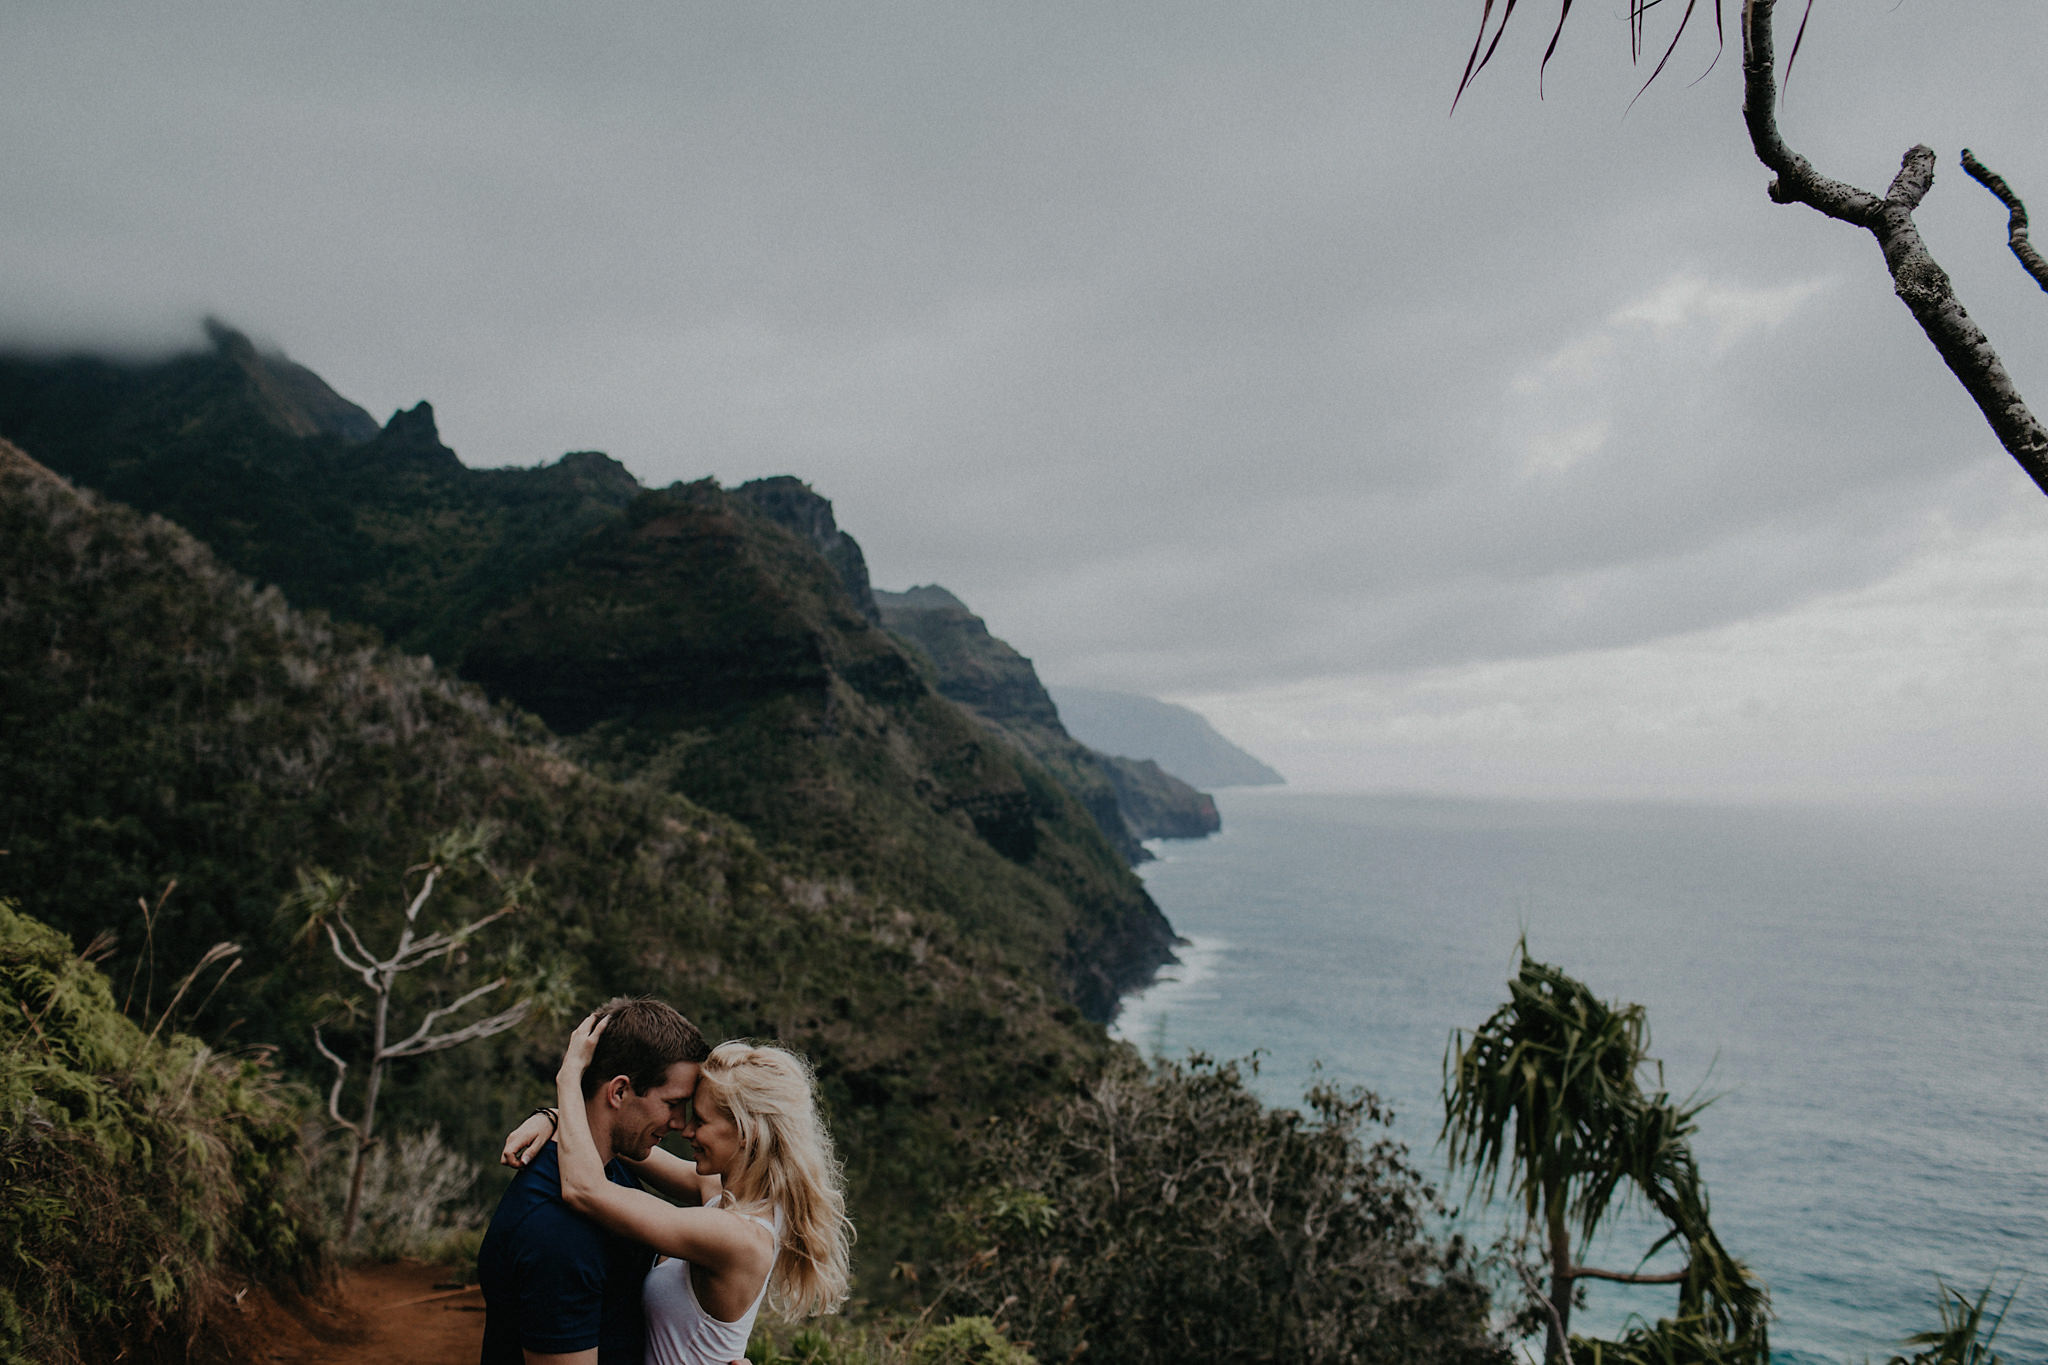 hawaii kauai elopement na pali coast mountain hike bride groom hugging photo